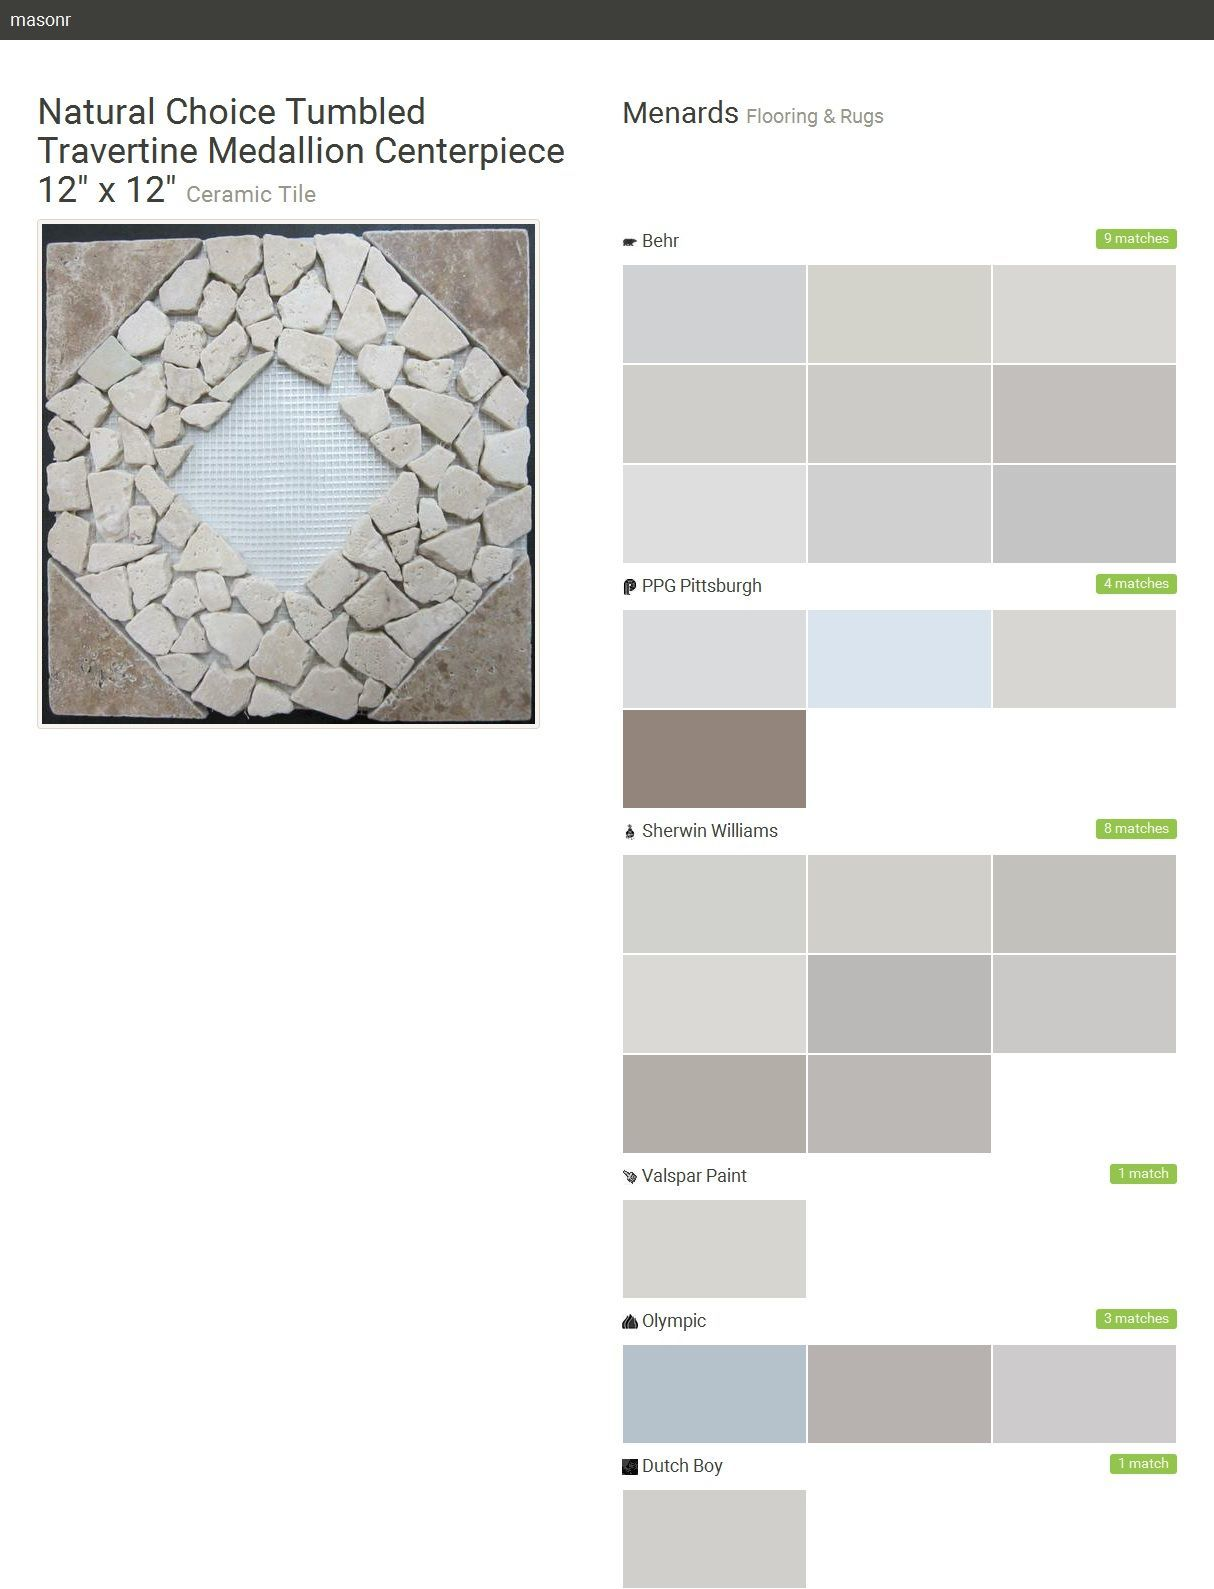 Natural choice tumbled travertine medallion centerpiece 12 x 12 natural choice tumbled travertine medallion centerpiece 12 x 12 ceramic tile flooring dailygadgetfo Image collections